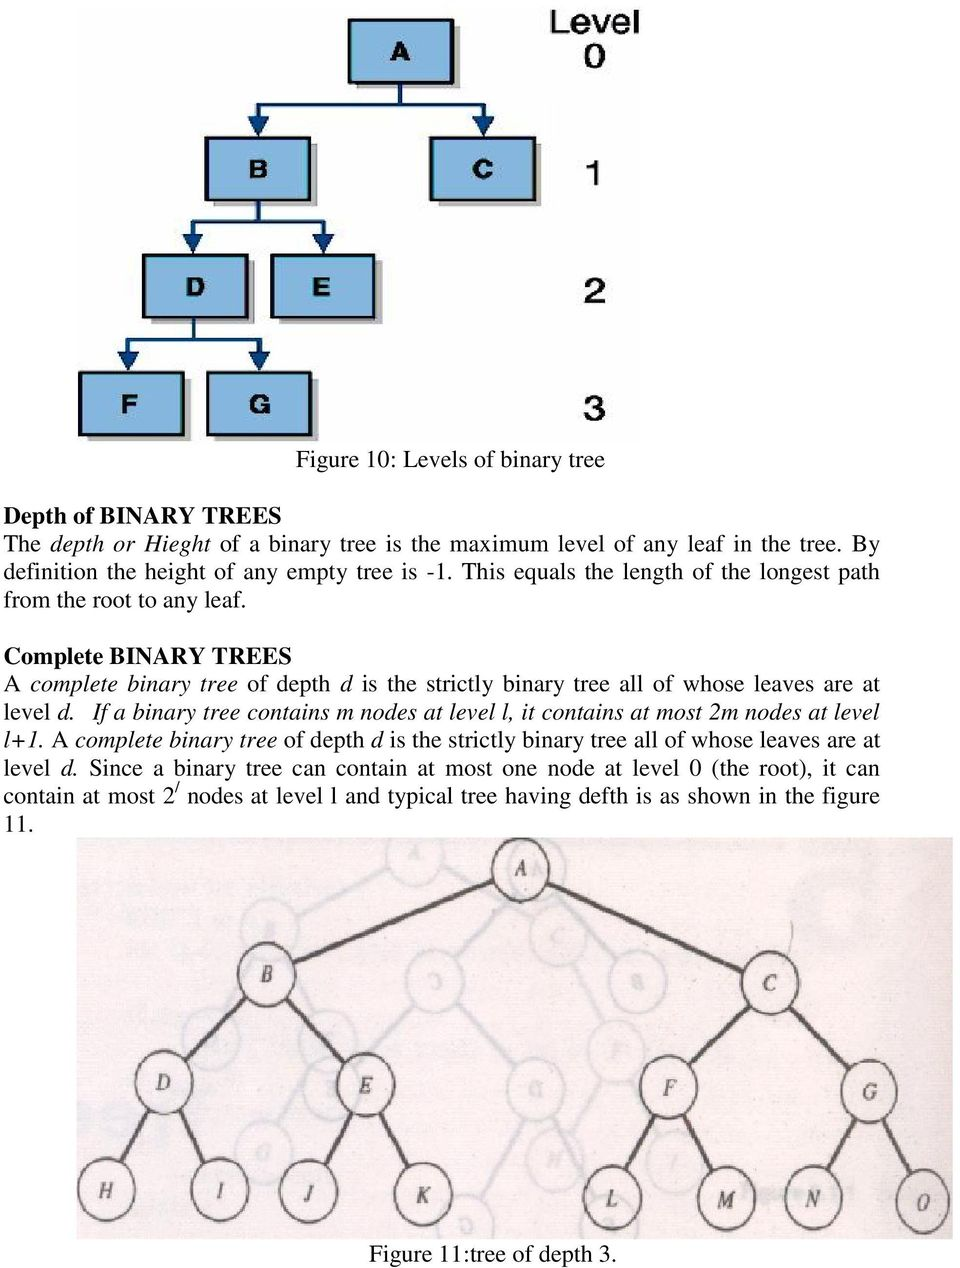 If a binary tree contains m nodes at level l, it contains at most 2m nodes at level l+1. A complete binary tree of depth d is the strictly binary tree all of whose leaves are at level d.